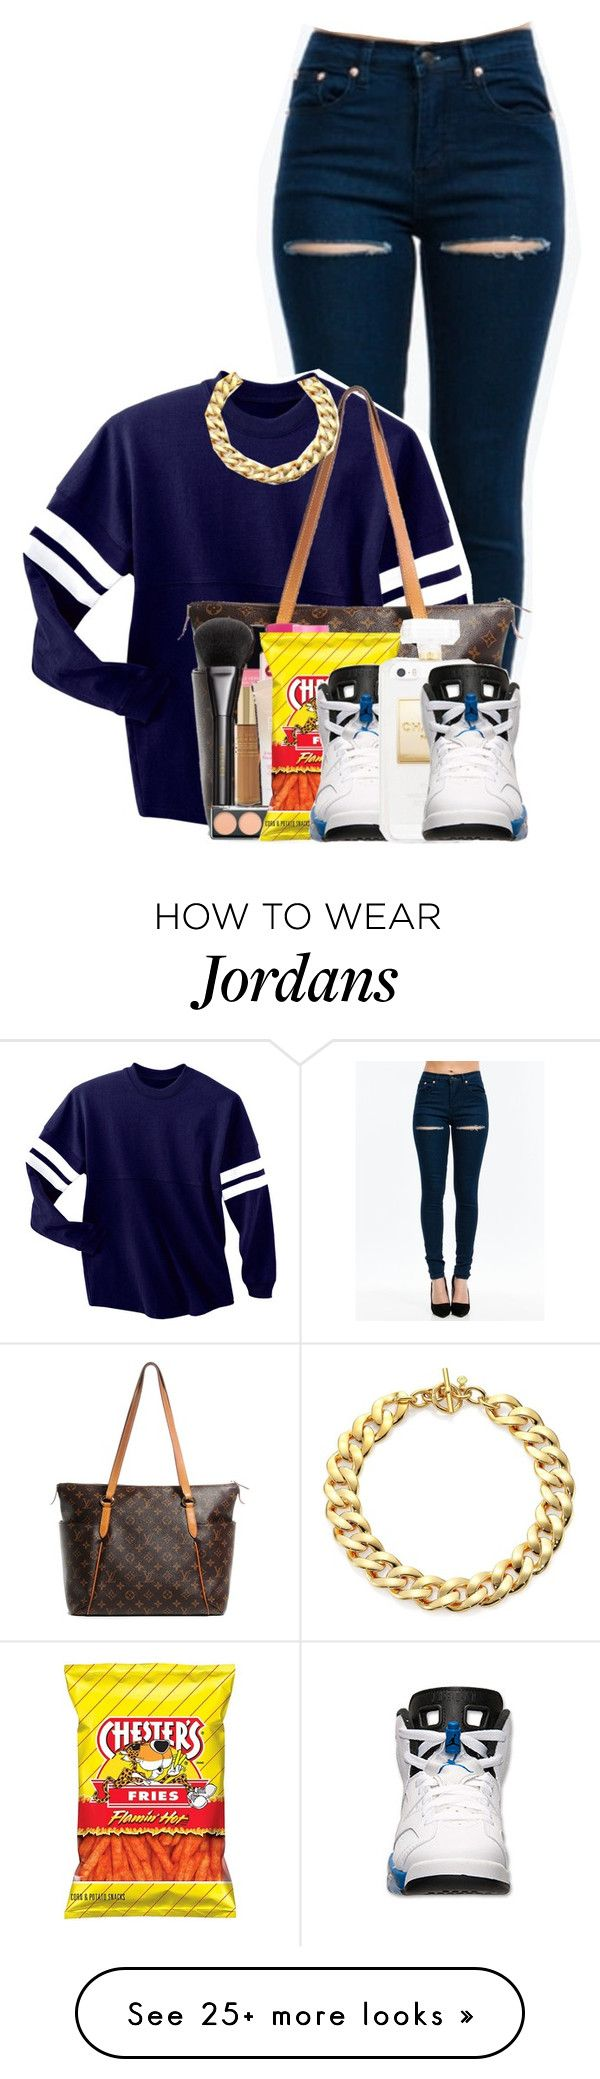 """Hey trendsetter,see the fire when the strobe hits you."" by lovejaycii on Polyvore featuring Louis Vuitton, Retrò and Michael Kors"